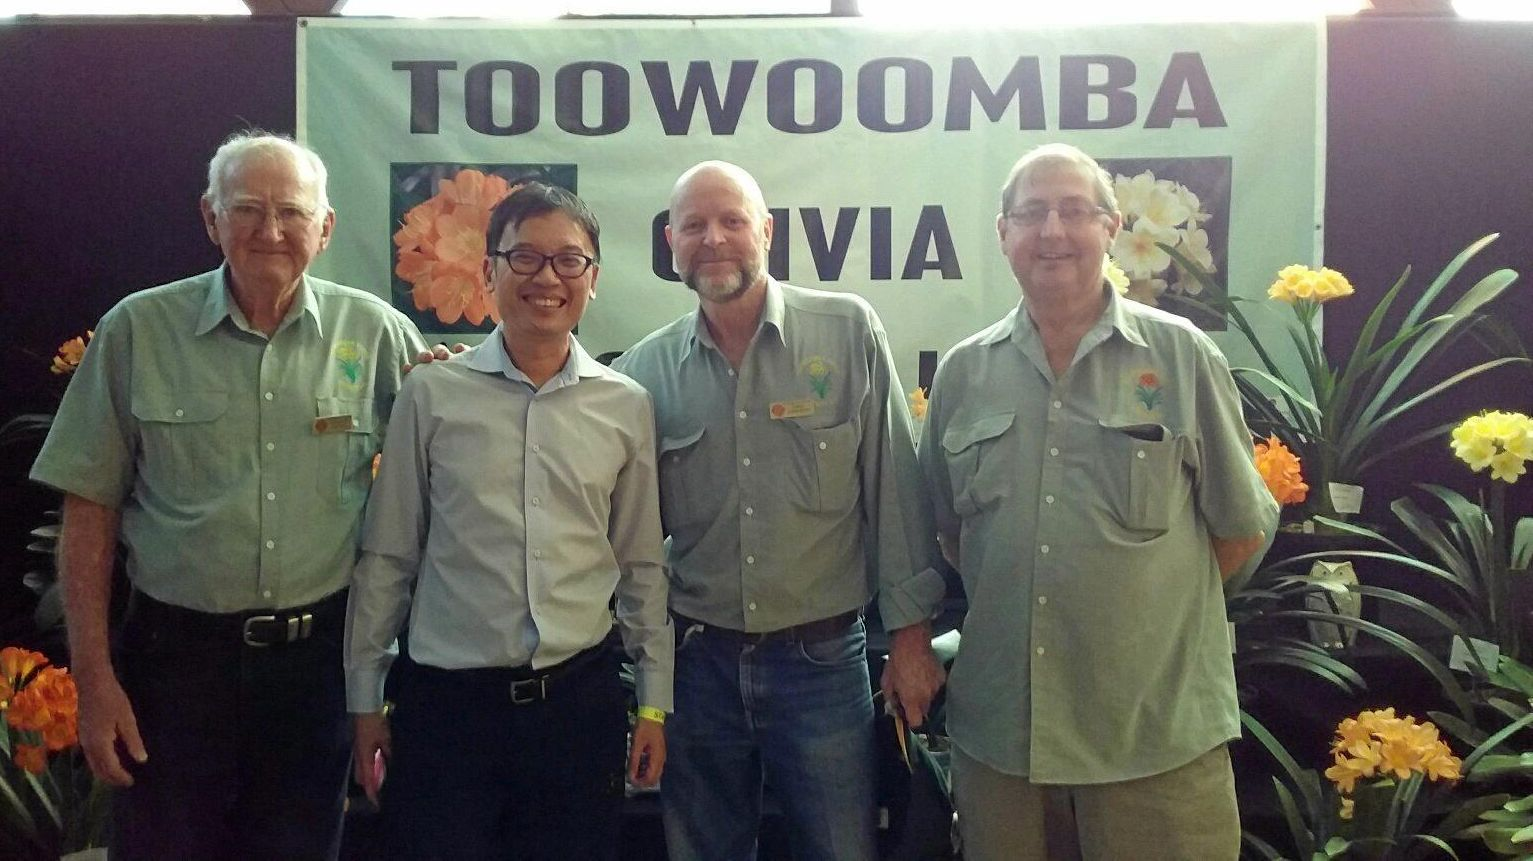 SPRING TIME: Toowoomba Clivia Society club members (from left) Graham Cottee, Felix Loh, Chief Operating Officer of Gardens by the Bay in Singapore with club members Greg Anderson and Ray Robinson.